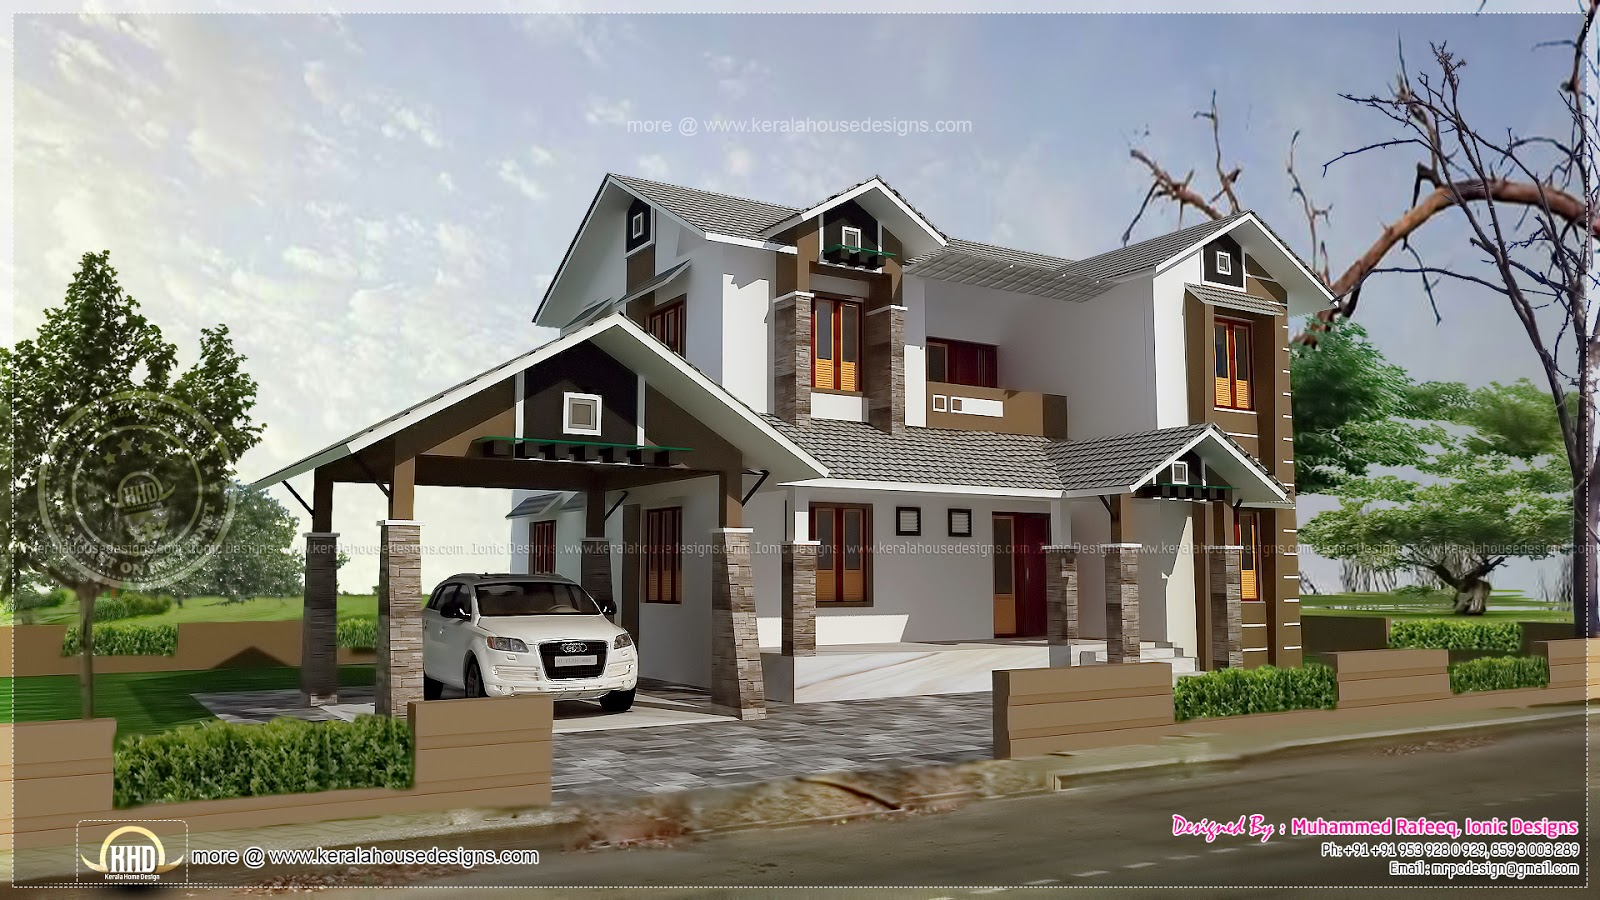 2109 Square Feet House With Separate Garage Home Kerala